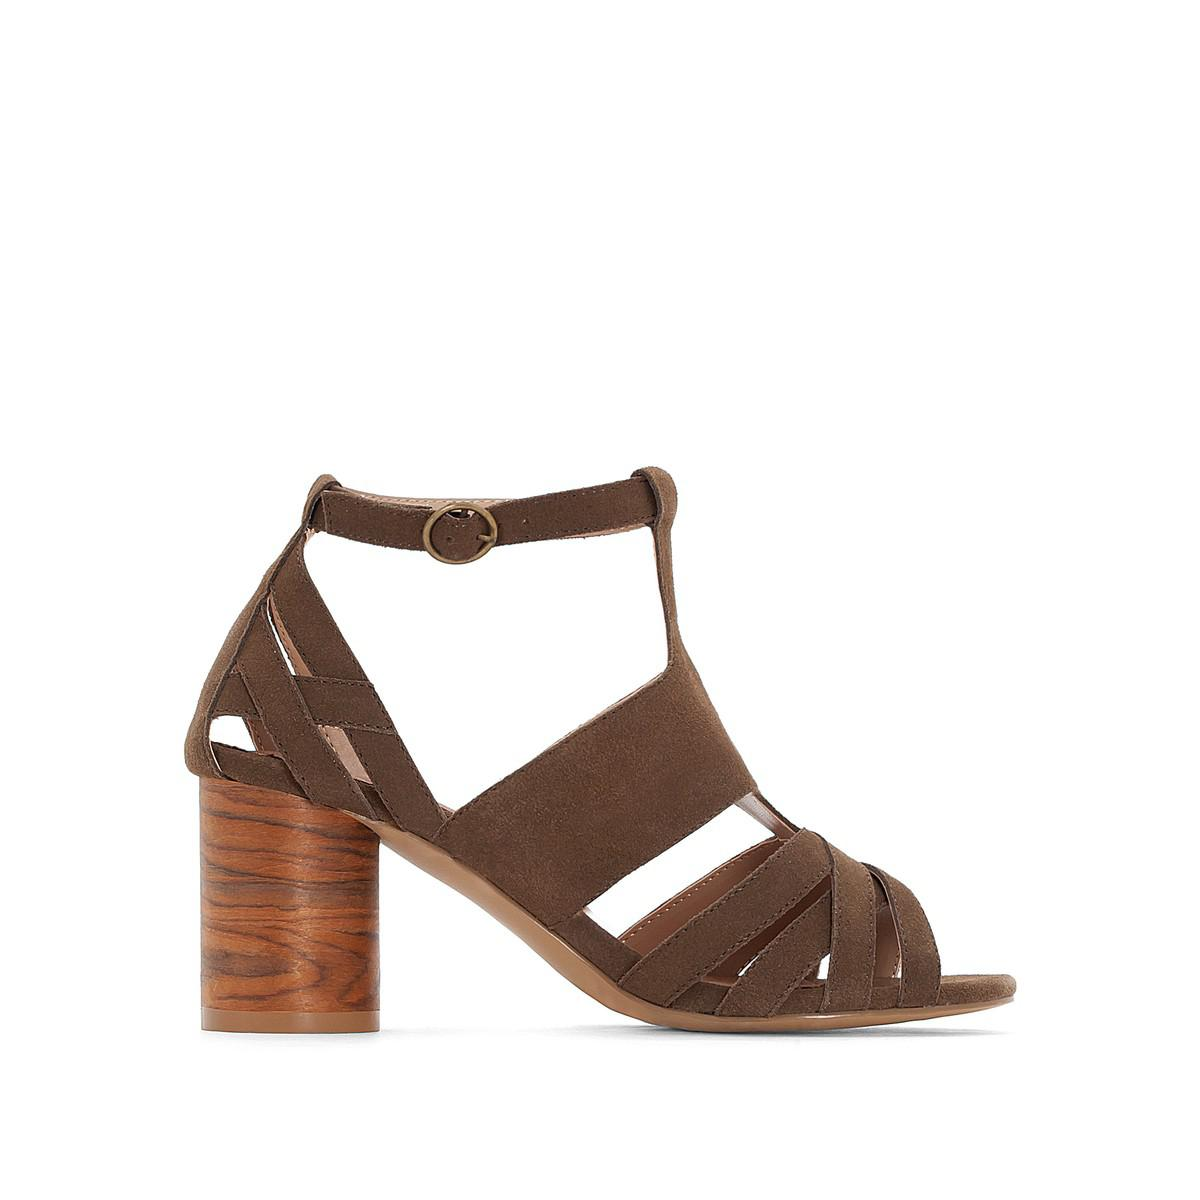 5505d4096 Lyst - La Redoute Leather Sandals With Rounded Heel in Brown